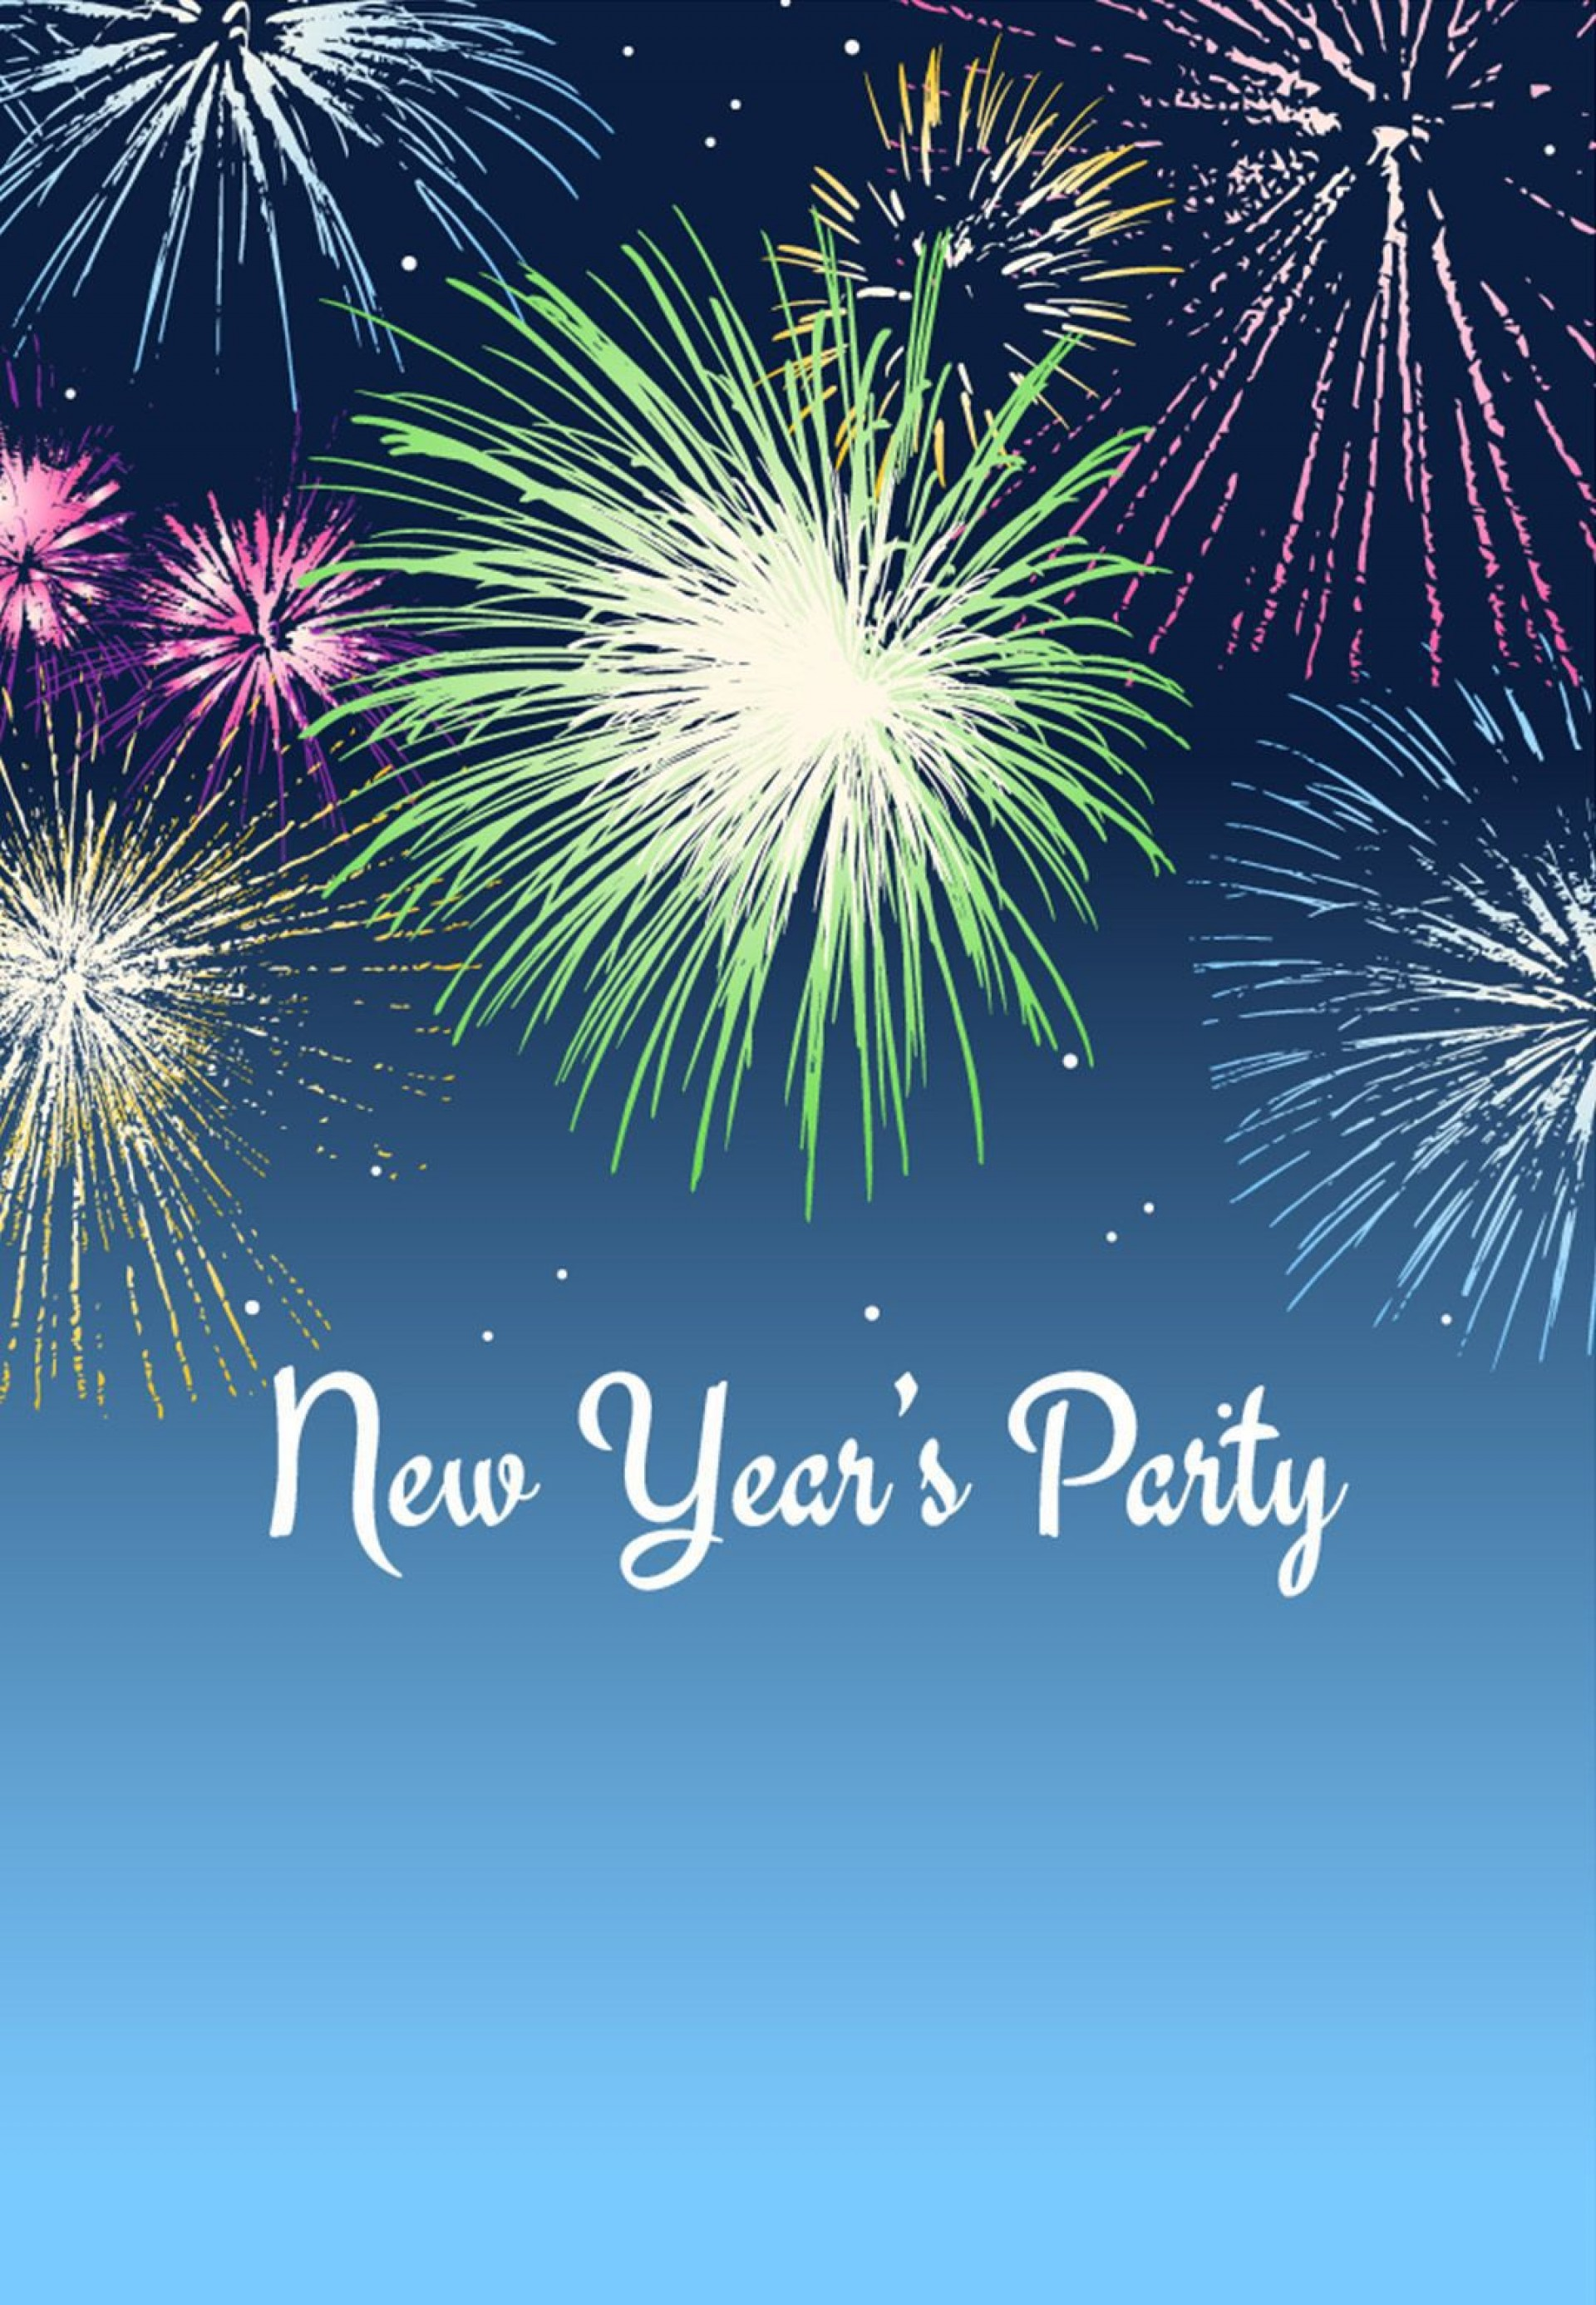 002 Awesome New Year Eve Invitation Template Inspiration  Party Free Word1920